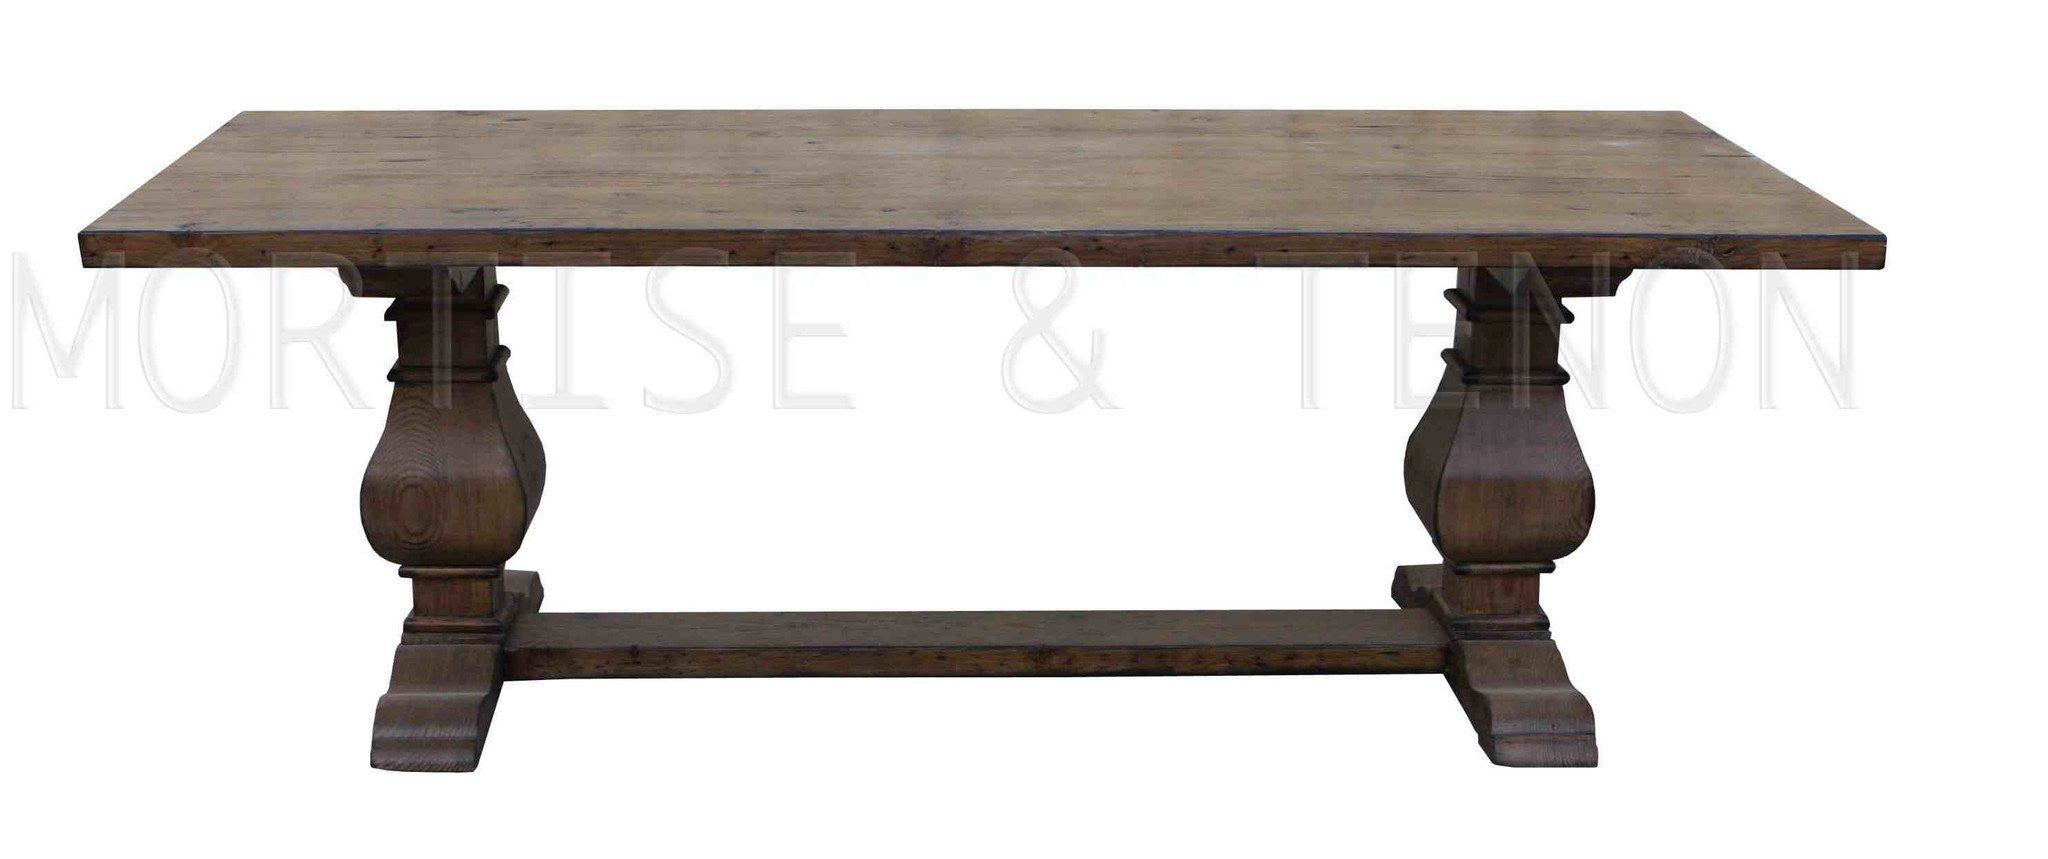 Wood Dining Tables With Leaves custom dining tables handmade from traditional trestle tables